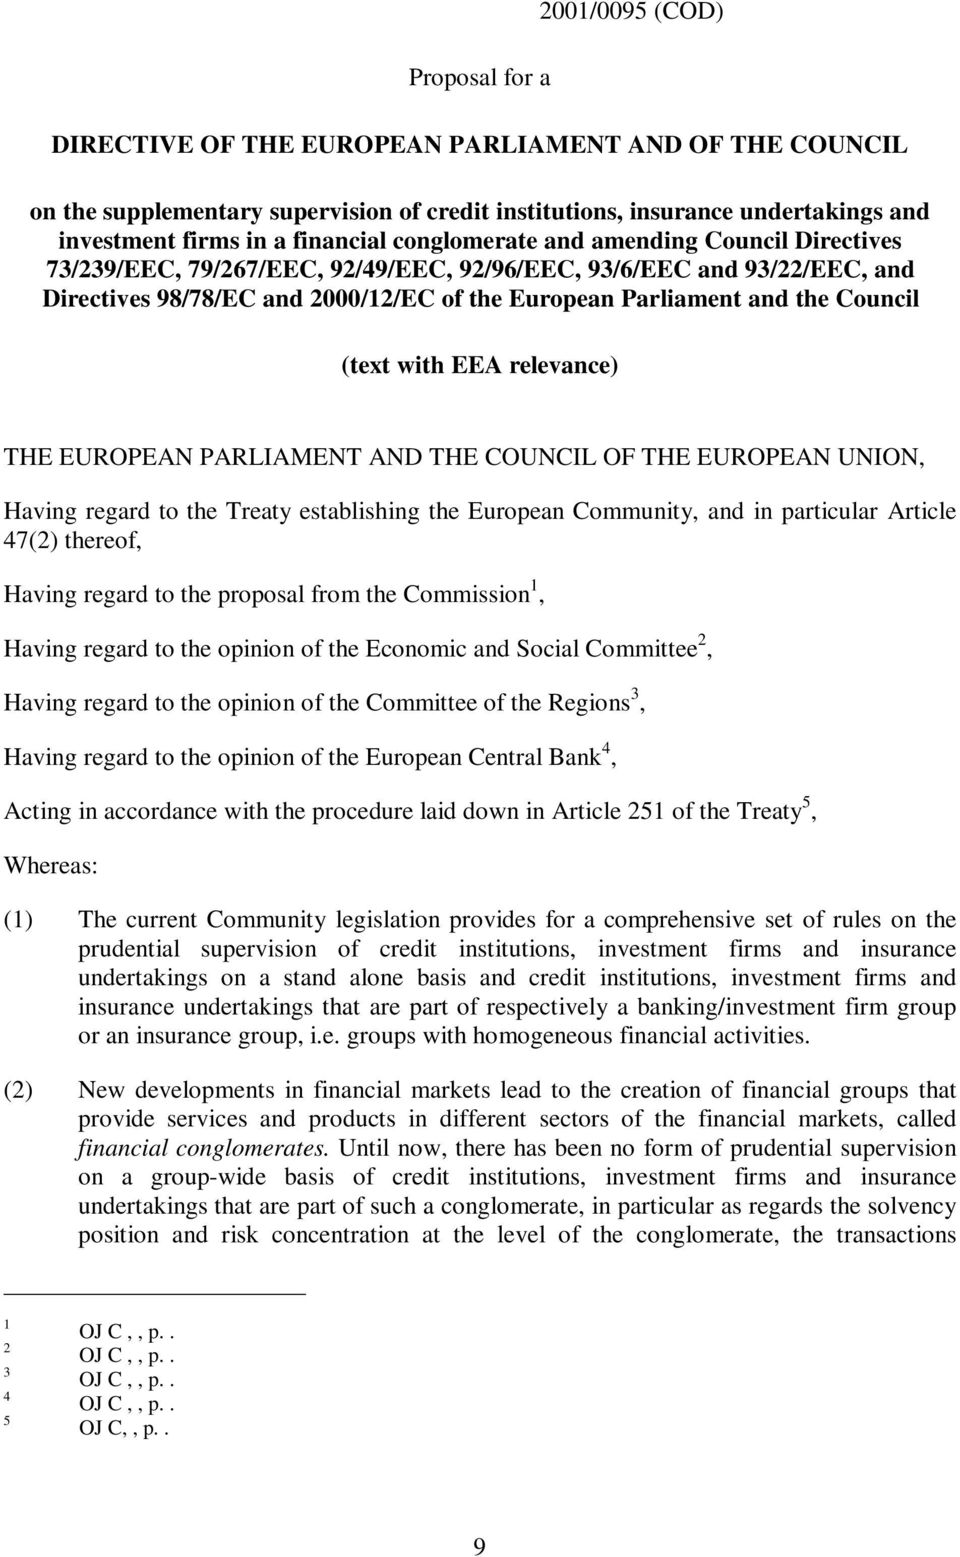 Council (text with EEA relevance) THE EUROPEAN PARLIAMENT AND THE COUNCIL OF THE EUROPEAN UNION, Having regard to the Treaty establishing the European Community, and in particular Article 47(2)